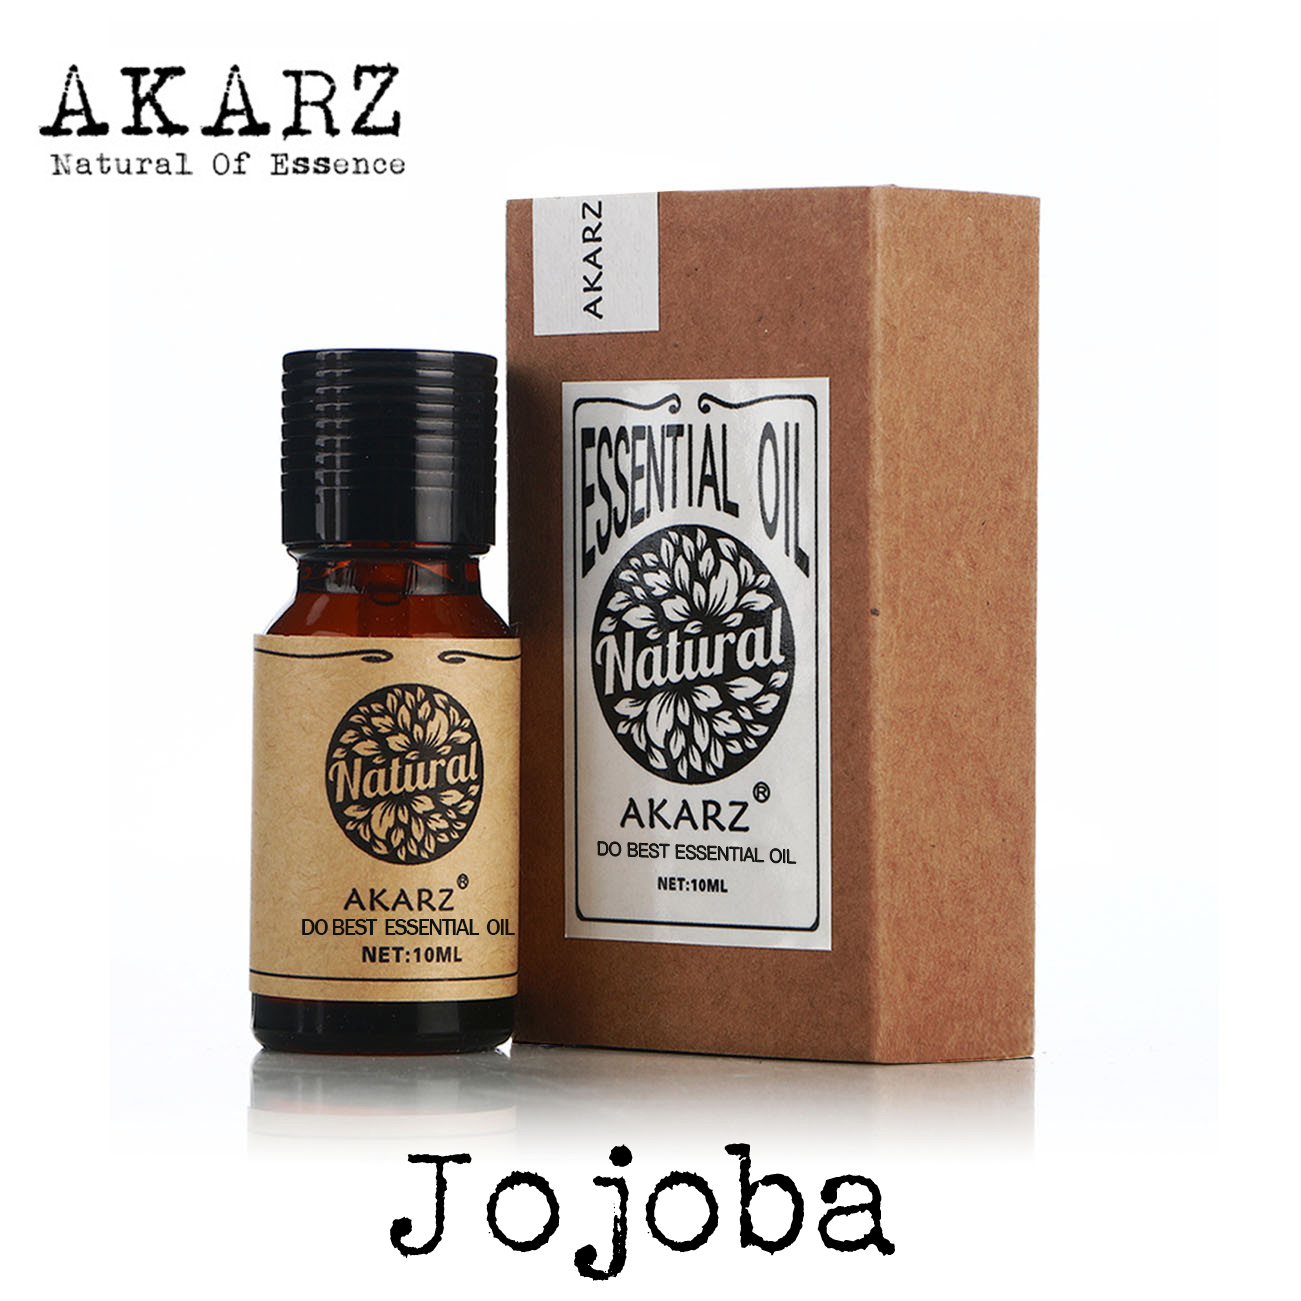 AKARZ Famous brand natural aromatherapy Jojoba essential oil Skin Hair care  bath maintenance Jojoba oil coconut oil extract cold pressed natural healthy oil for aromatherapy hair